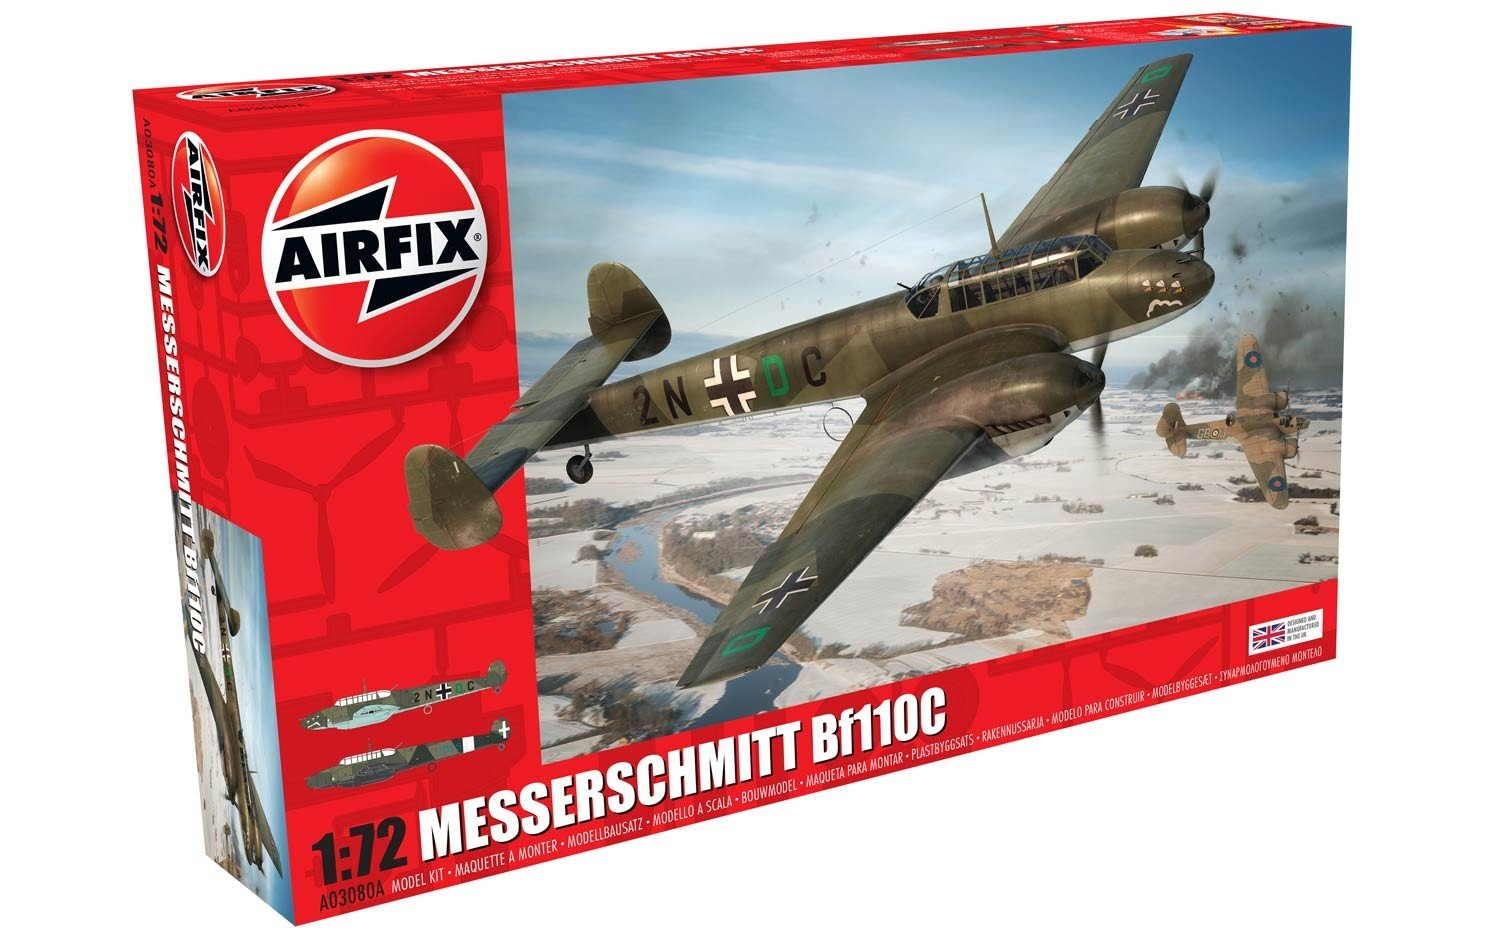 Airfix Messerschmitt Bf110C 1 72 Scale Plastic Model Airplane A03080A